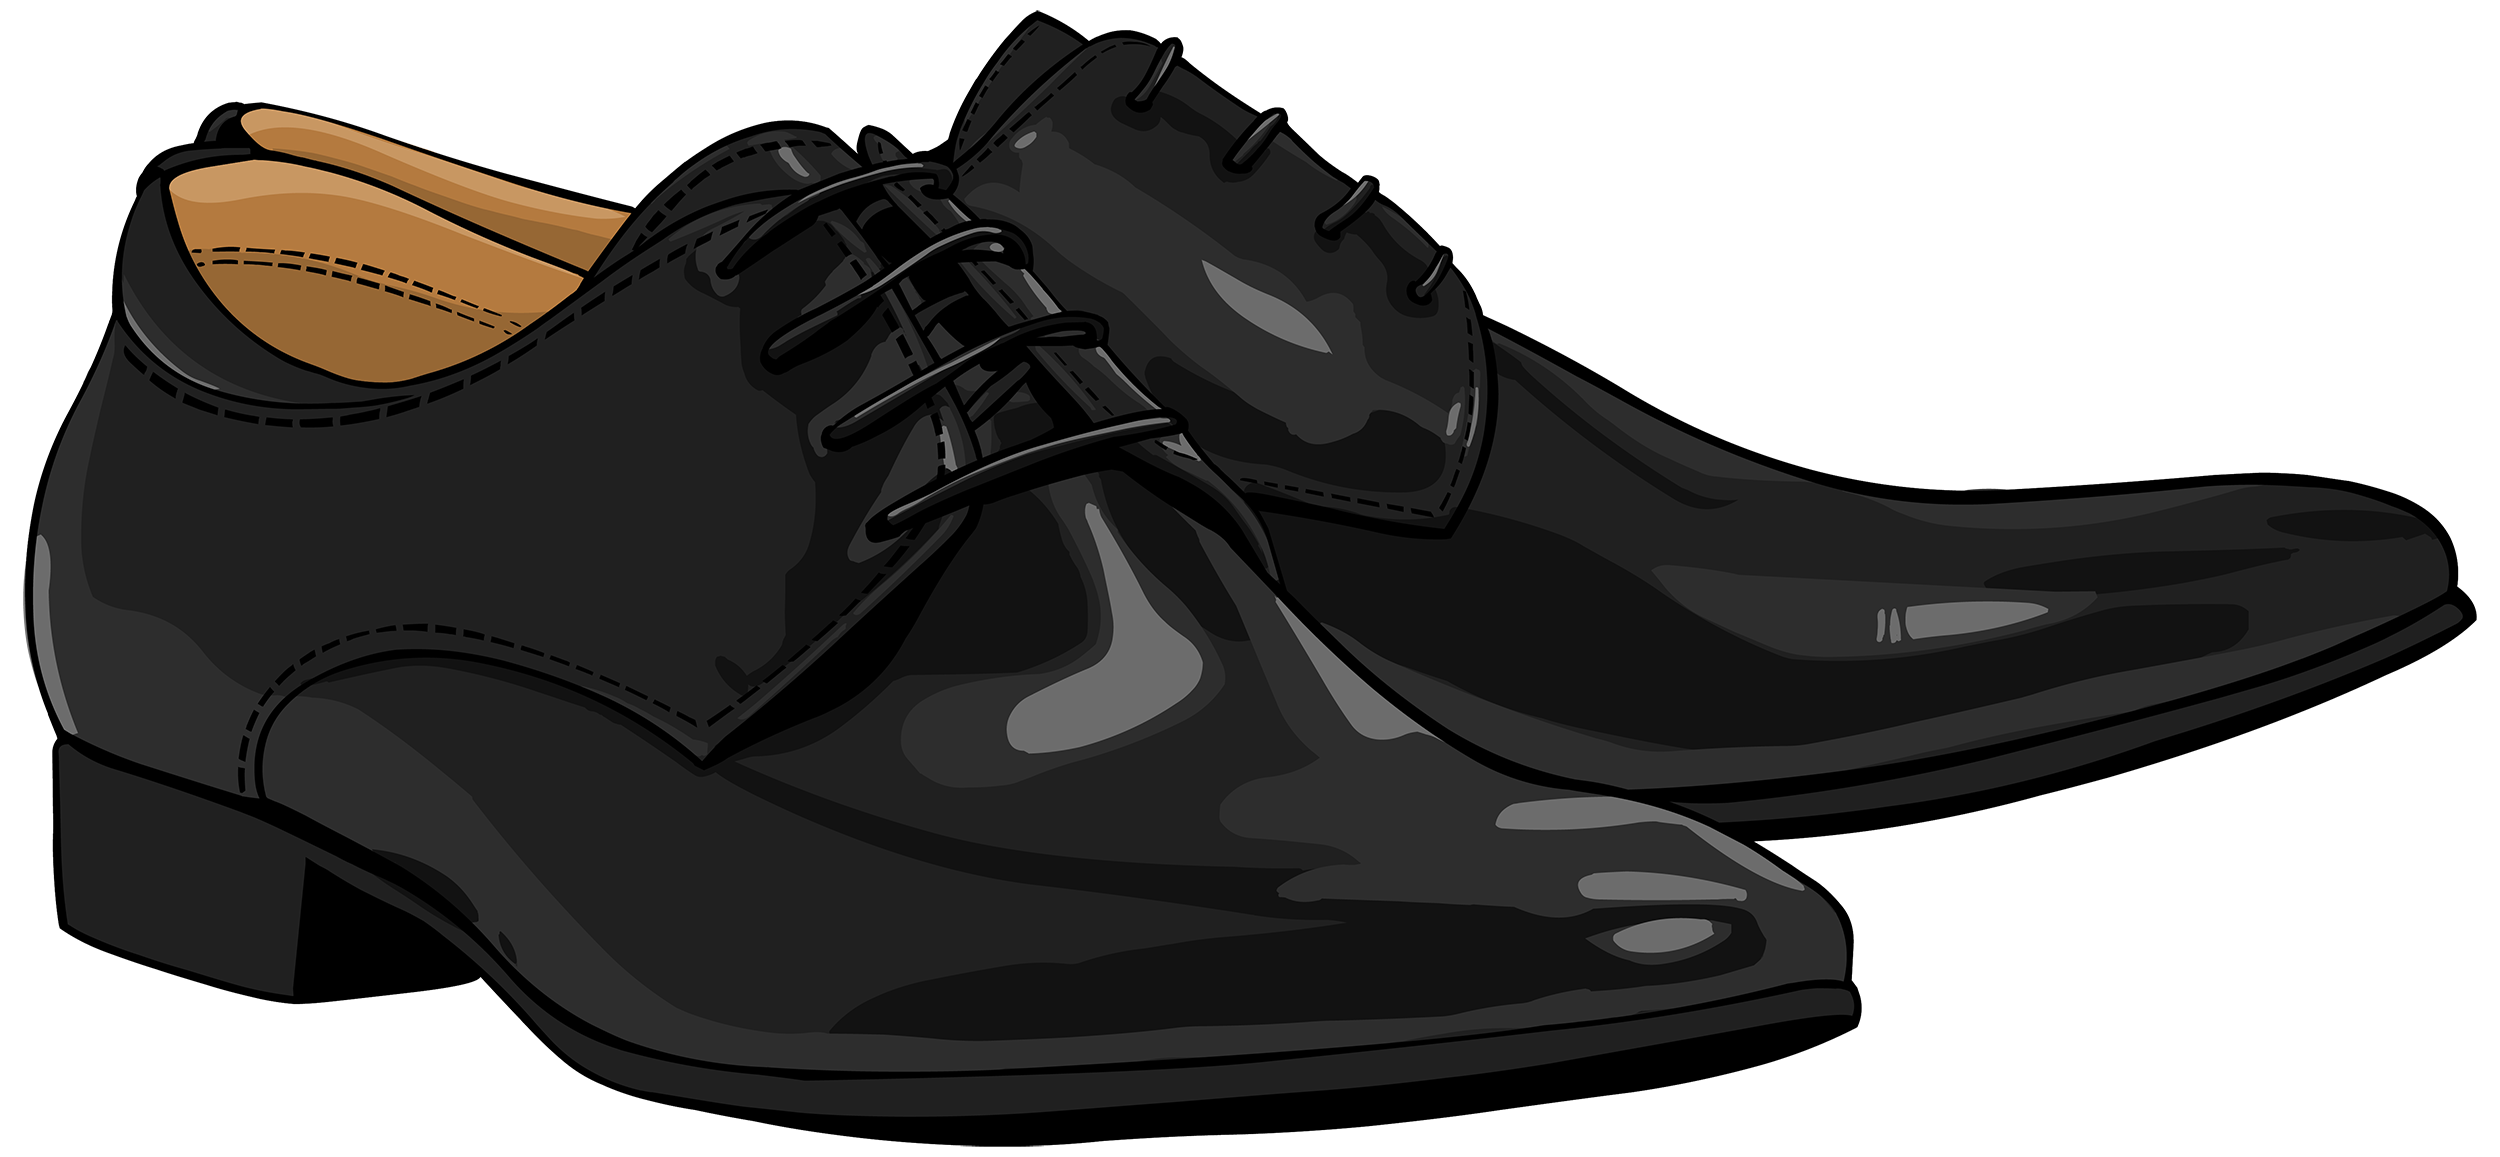 Shoes Clipart Png - Black Men Shoes PNG Clipart - Best WEB Clipart